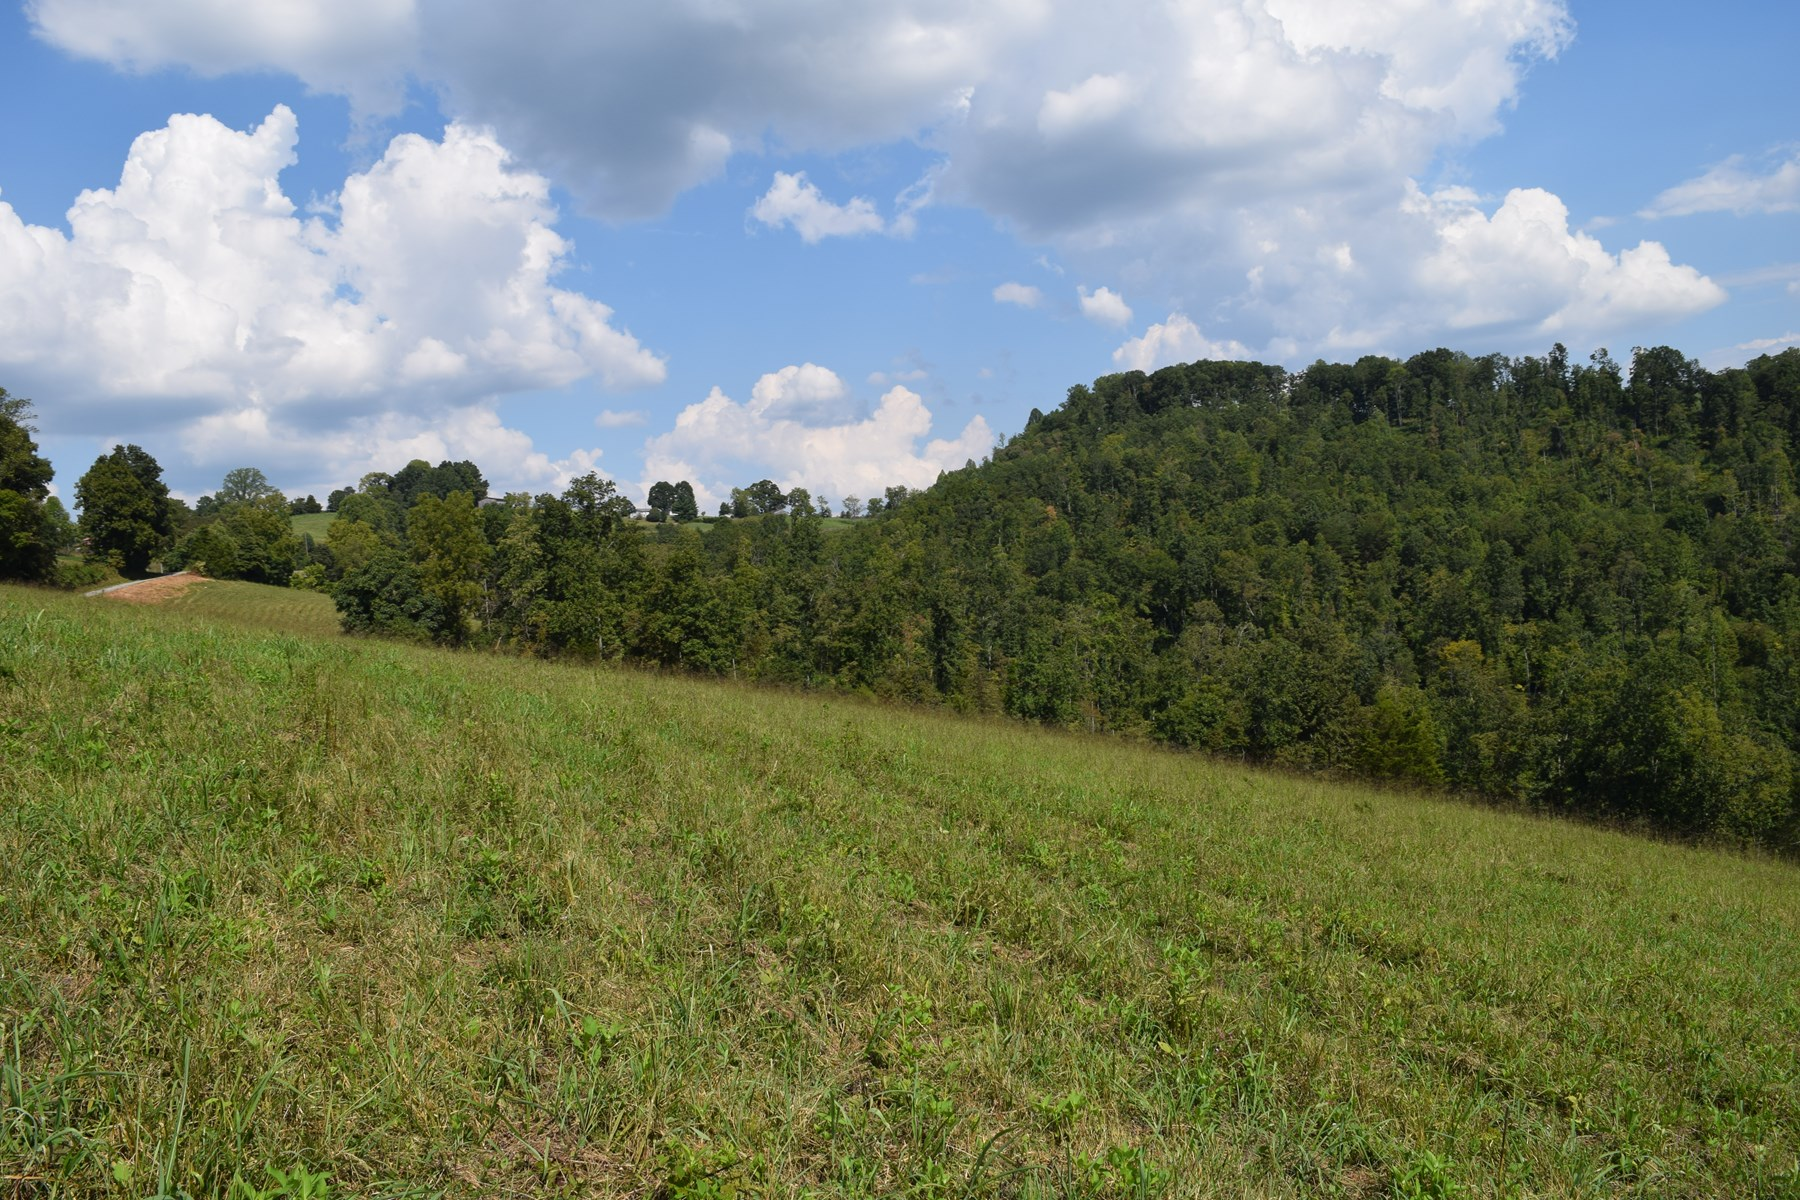 EAST TN LAND FOR SALE CLAIBORNE COUNTY/ TAZEWELL TENN 37879